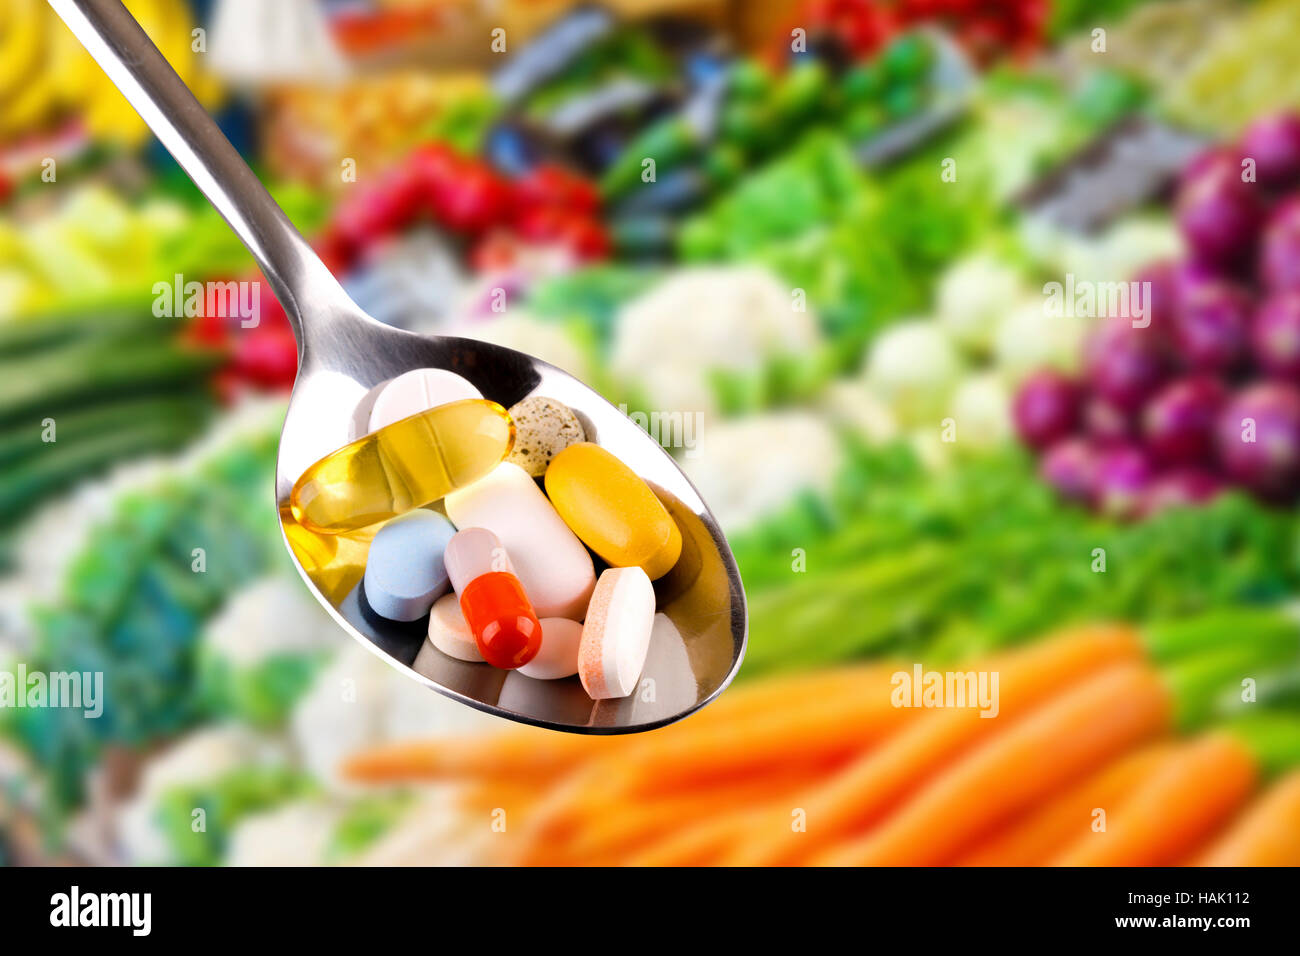 spoon with pills, dietary supplements on vegetables background - Stock Image